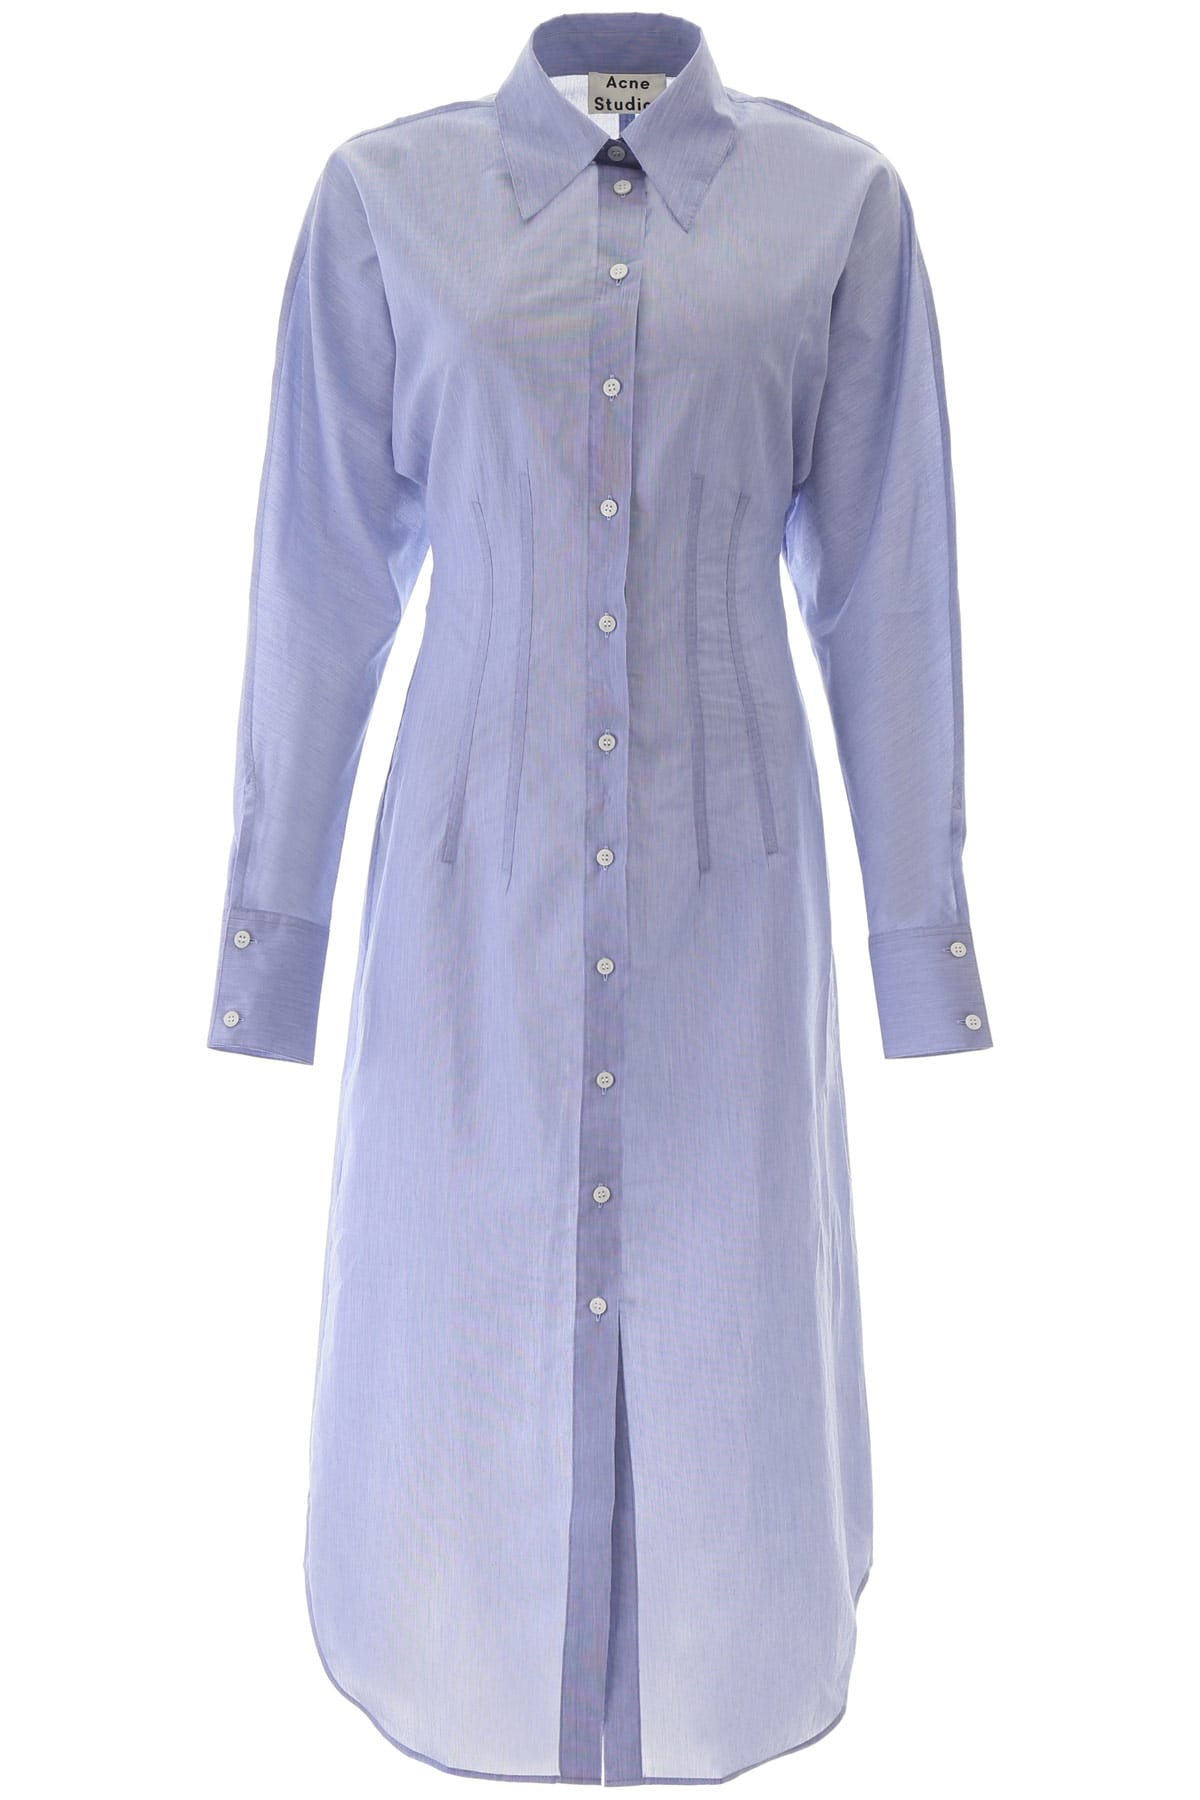 Buy Acne Studios Midi Shirt Dress online, shop Acne Studios with free shipping